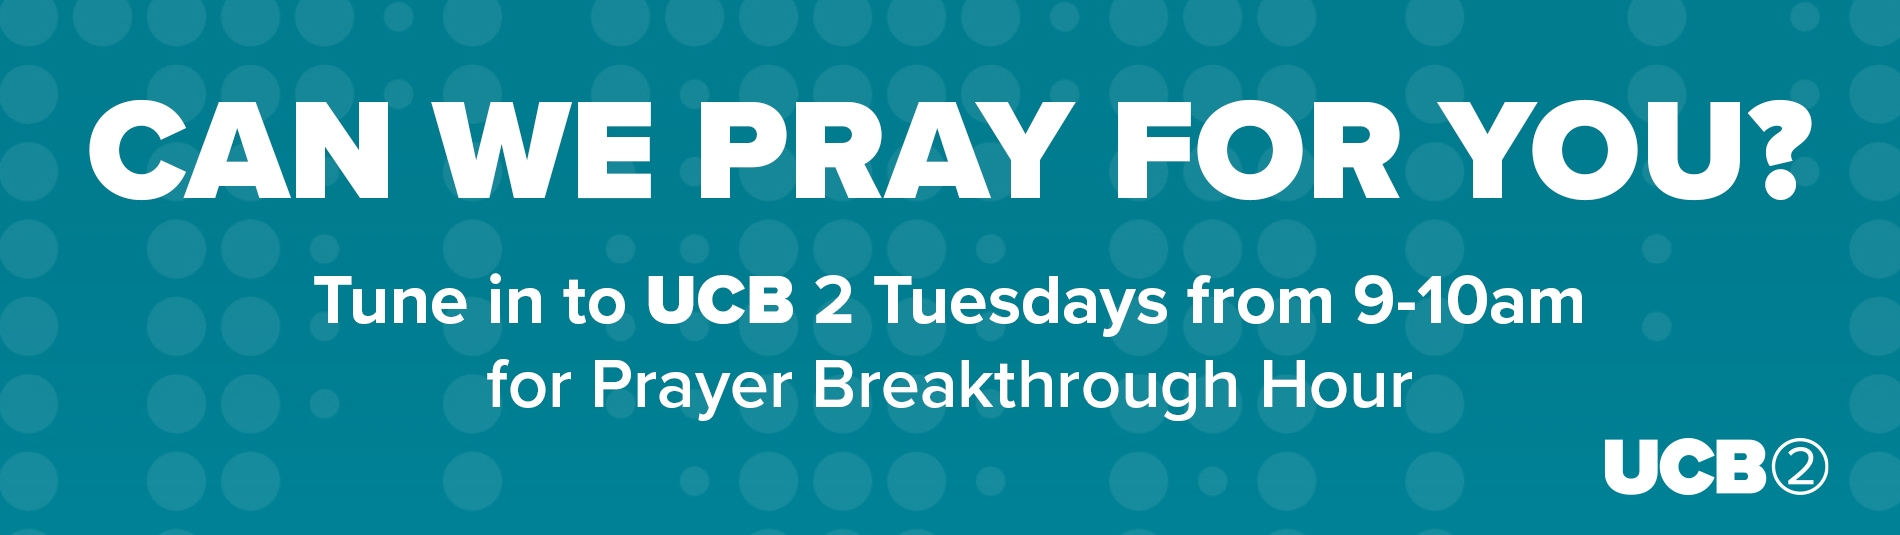 Can we pray for you? Tune in to UCB 2 Tuesdays from 9-10am for Prayer Breakthrough Hour.